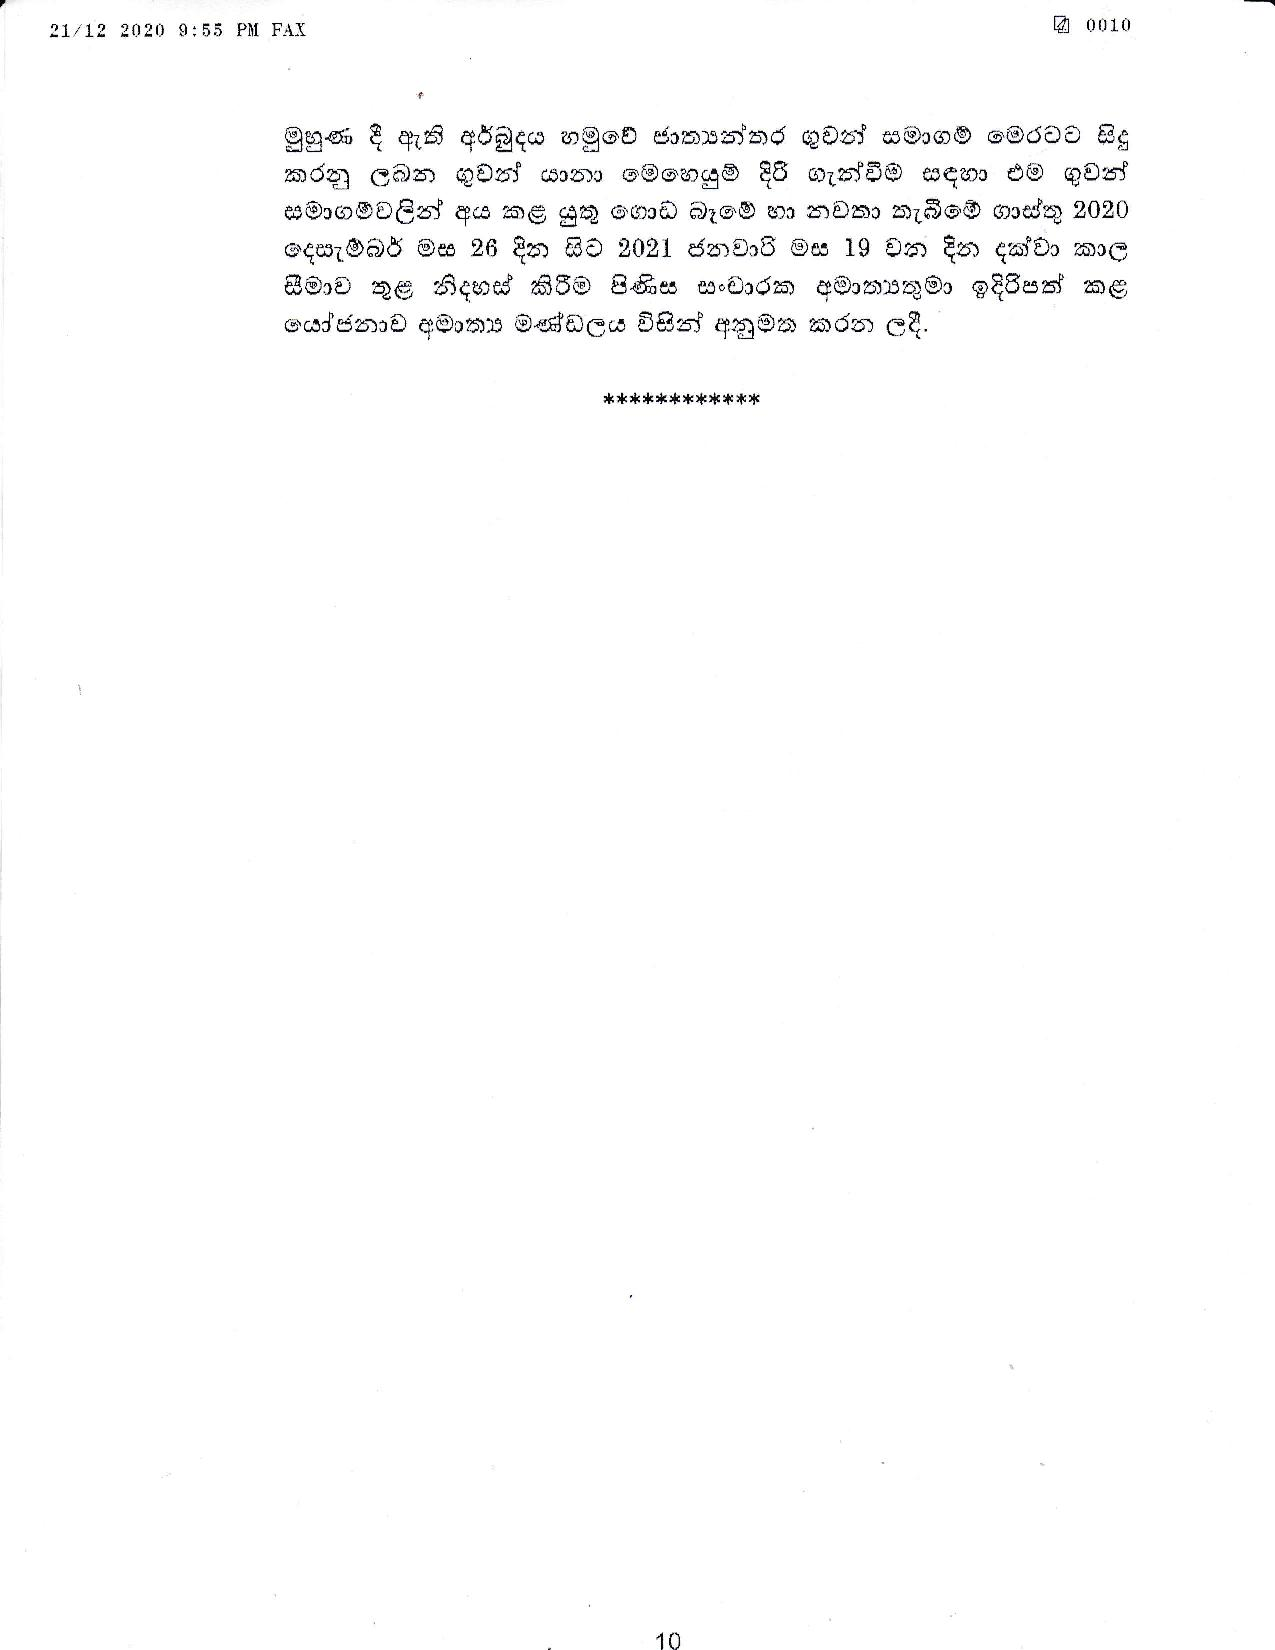 Cabinet Decision on 21.12.2020 page 010